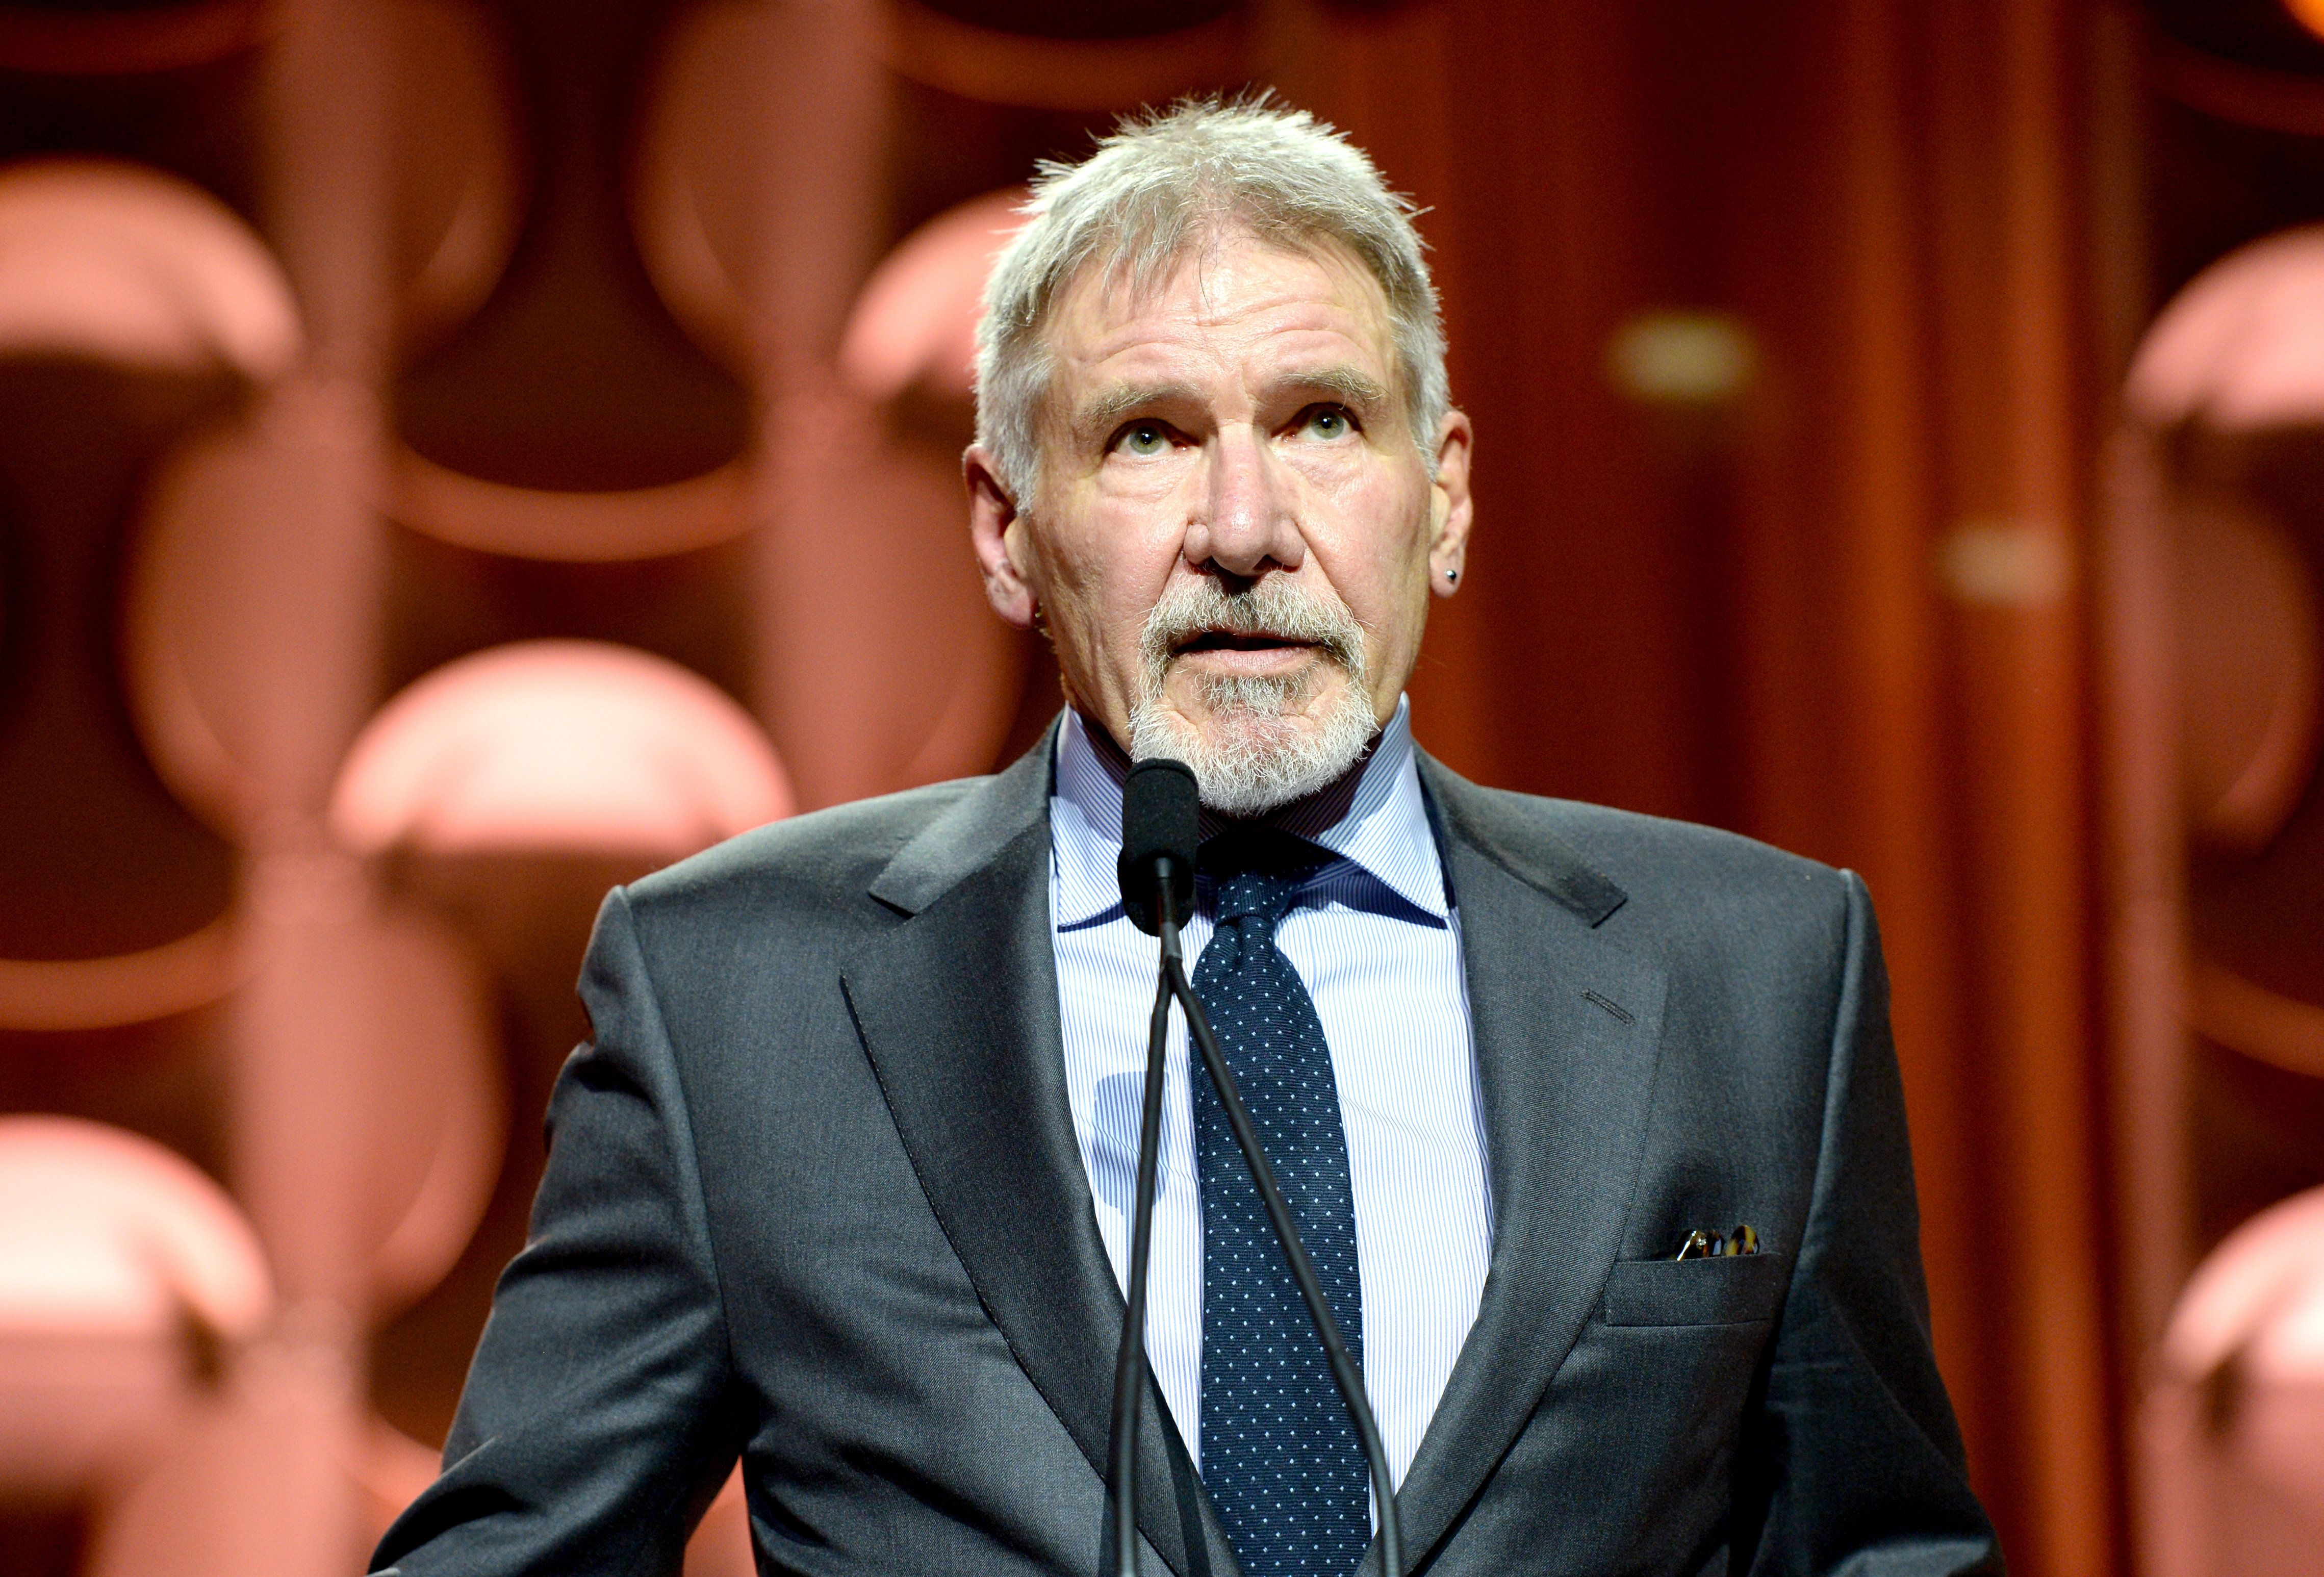 Harrison Ford is no stranger to aircraft